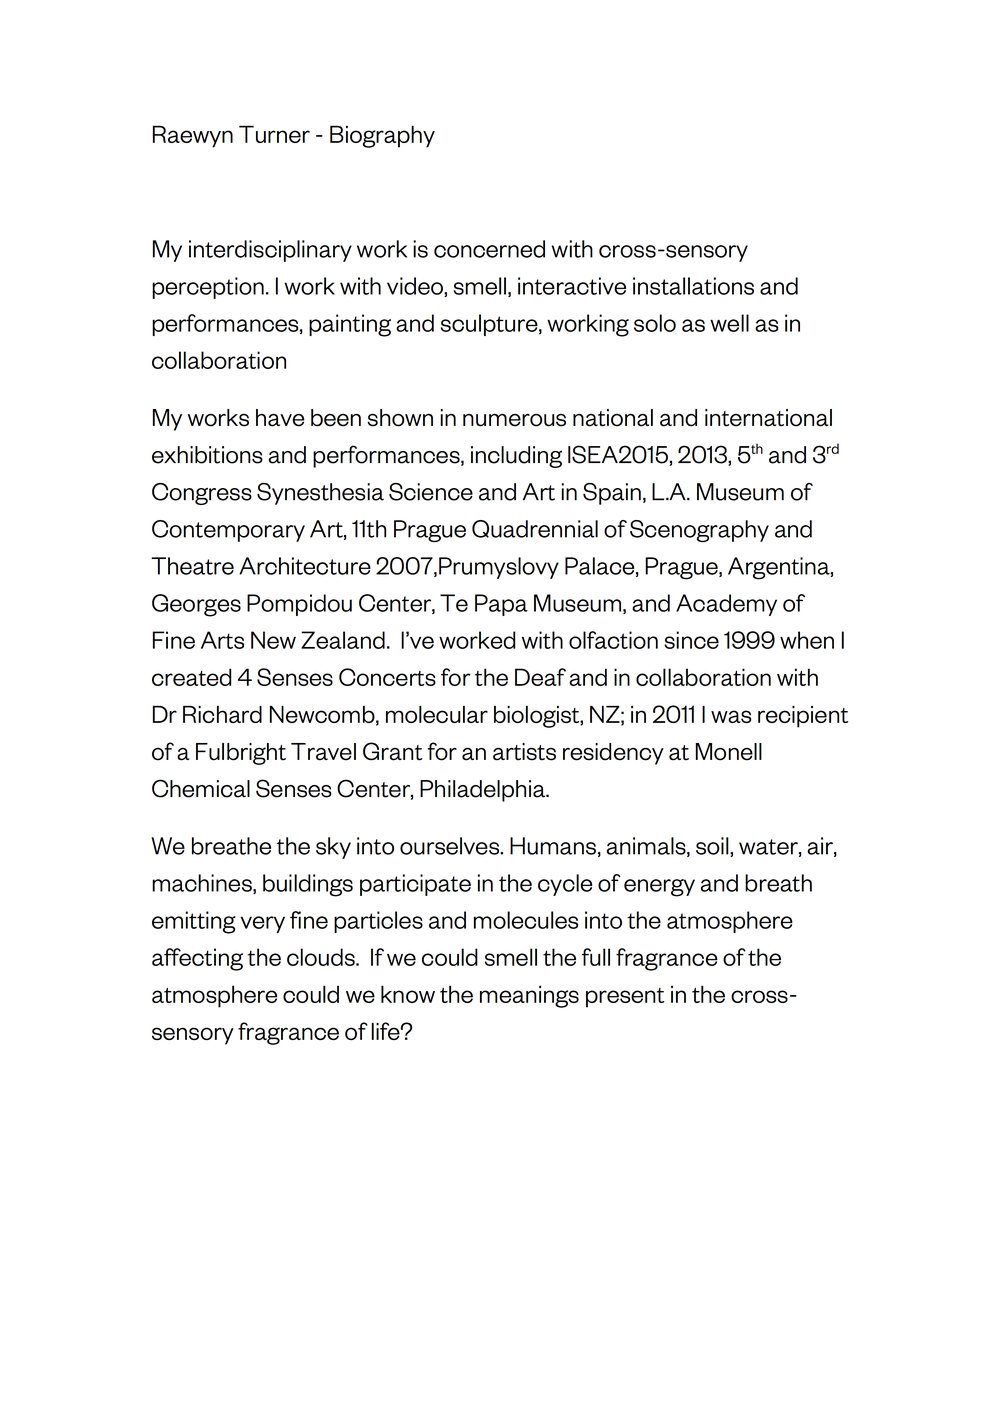 Raewyn Turner BIO & STATEMENT PG2.jpg